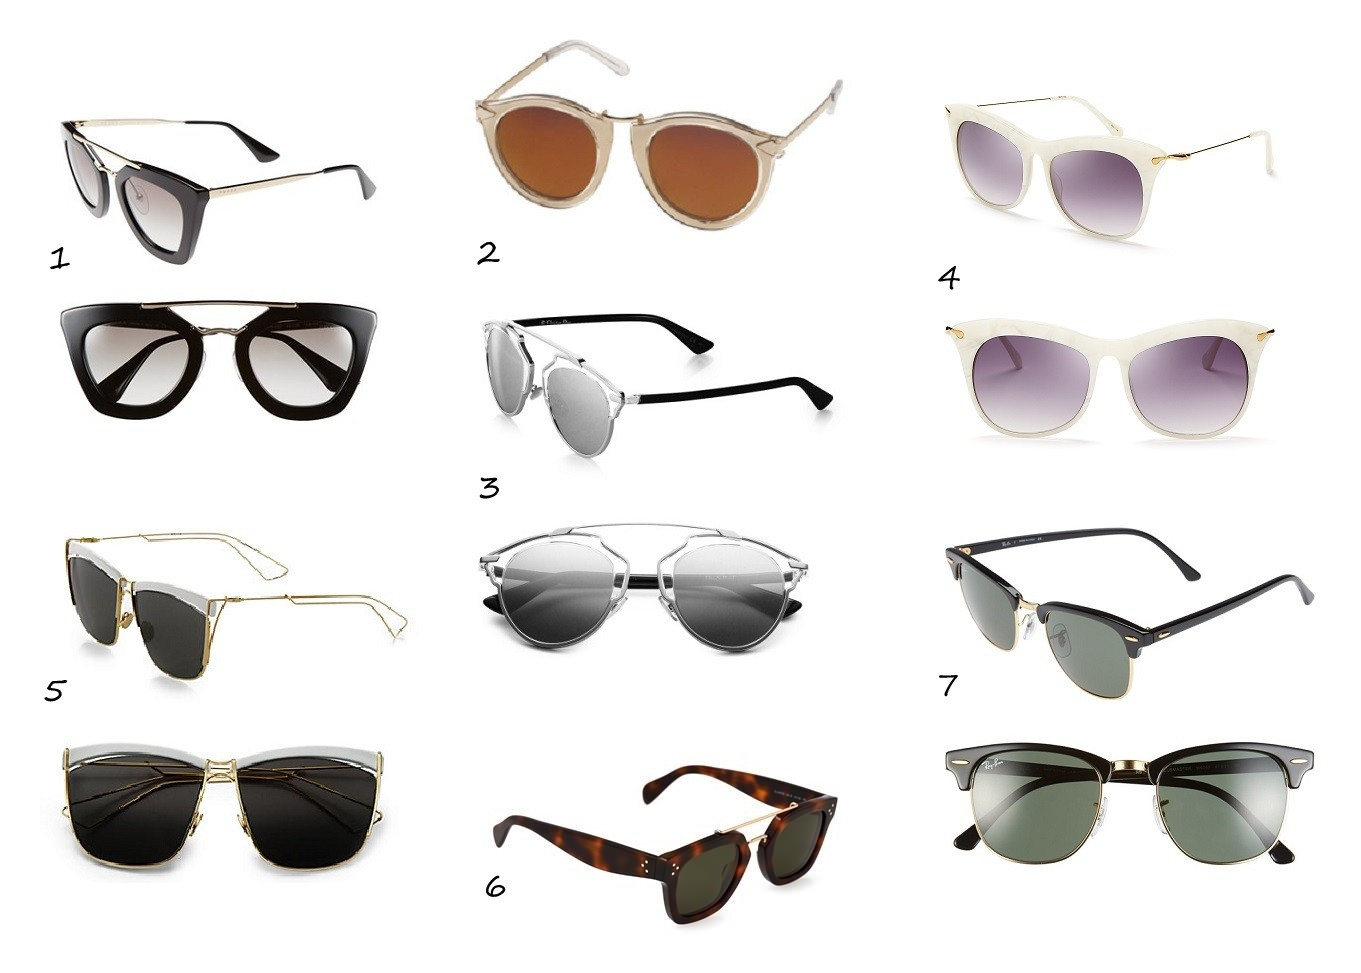 summer 2015 retro sunglasses trend celine dior prada ray-ban karen walker